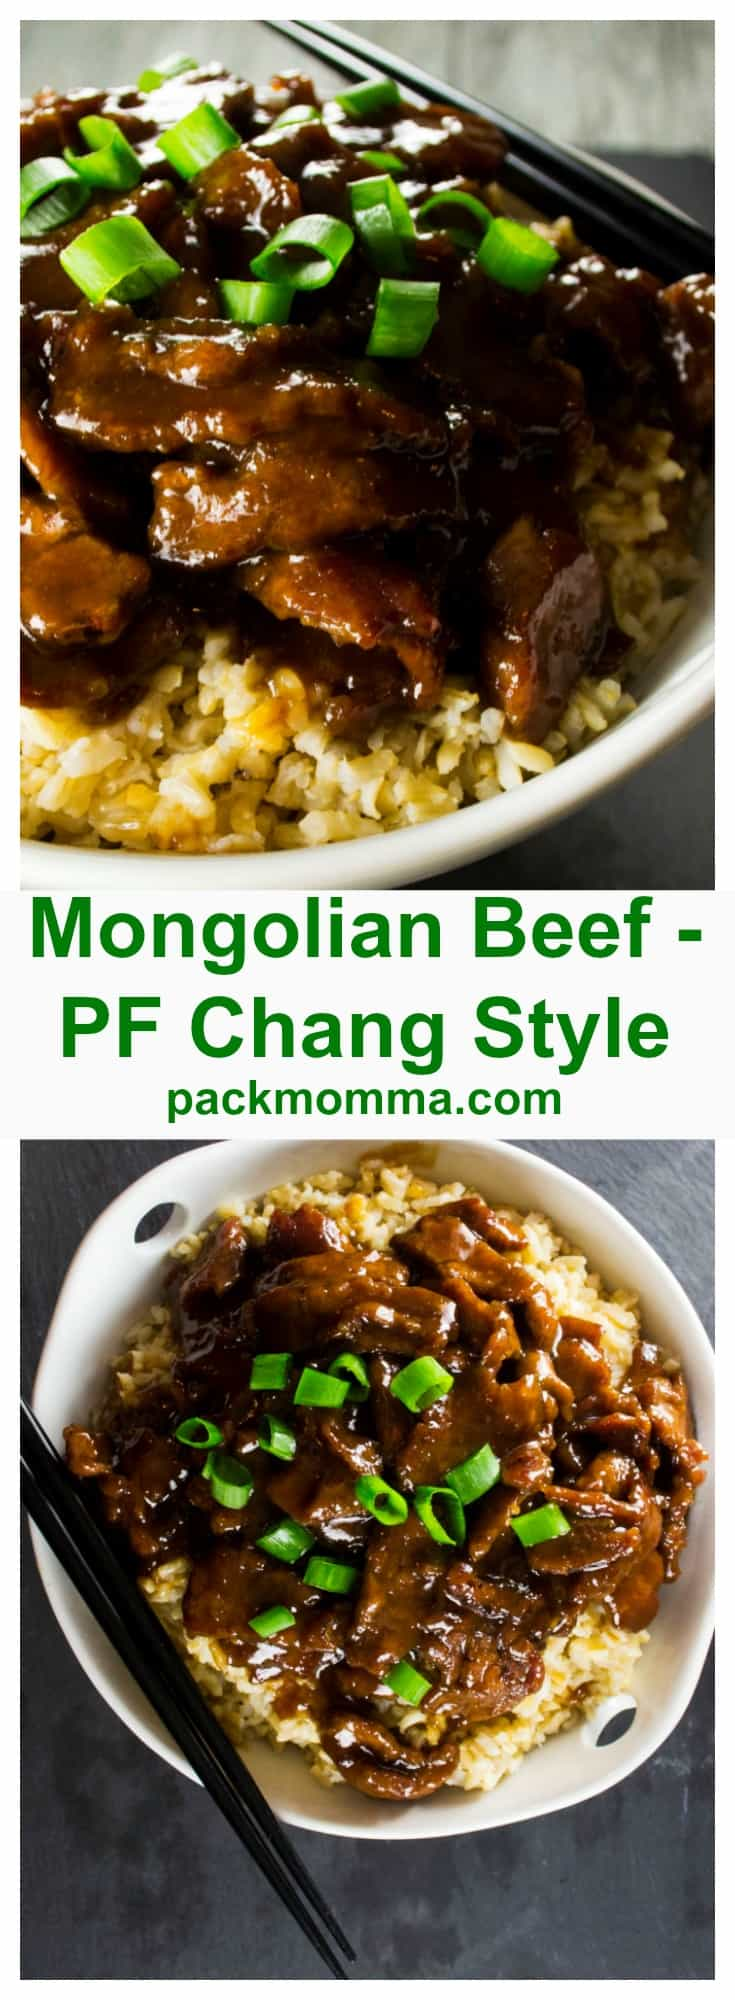 P.F. Chang Style Mongolian Beef | This sweet and spicy P.F. Chang's Mongolian Beef dish is rich with Asian inspired flavors and tastier than any Chinese take out you could have delivered. | Pack Momma | https://www.packmomma.com